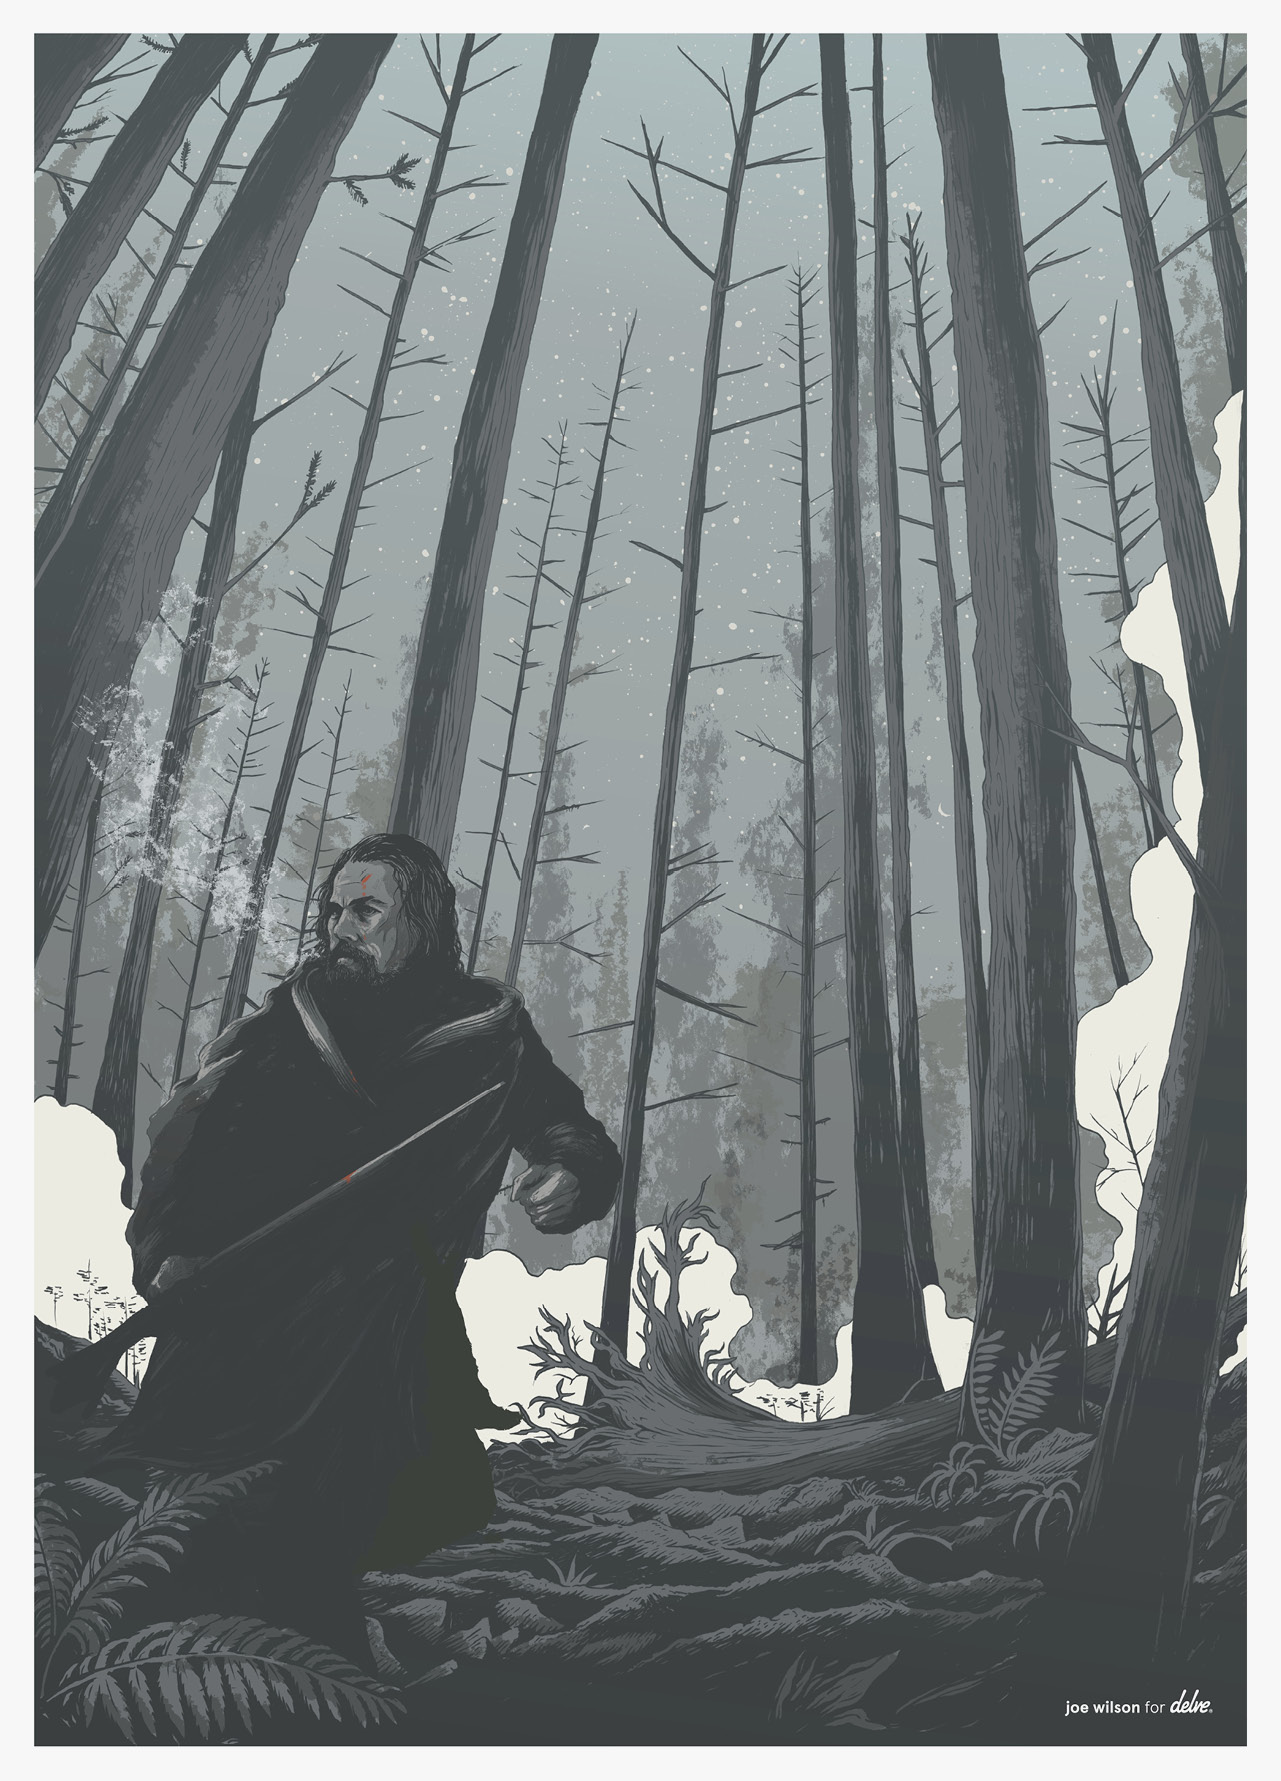 The Revenant by Joe Wilson